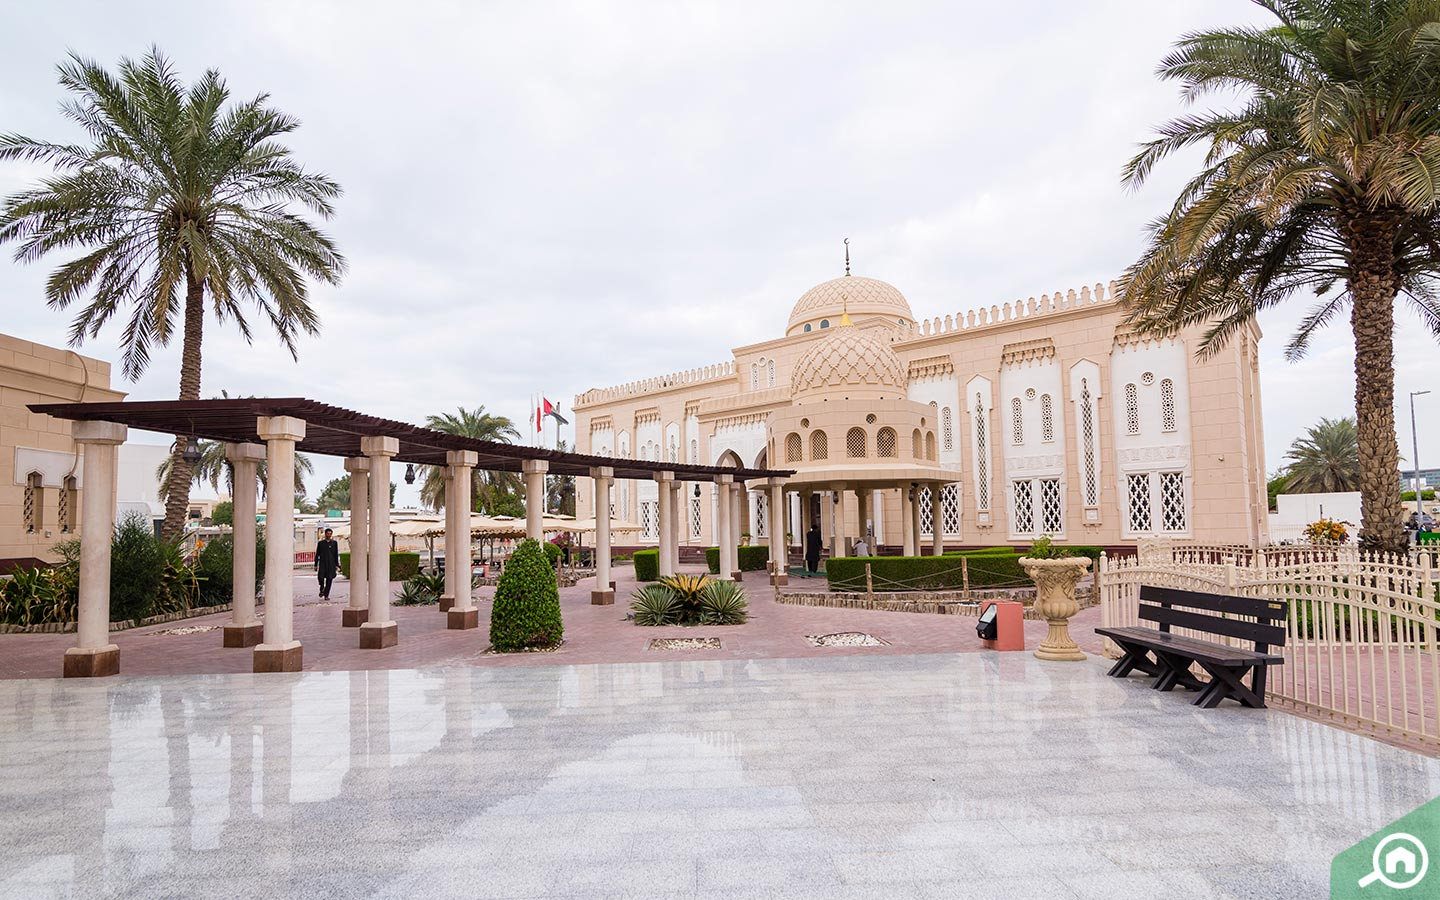 Grand mosque in Jumeirah